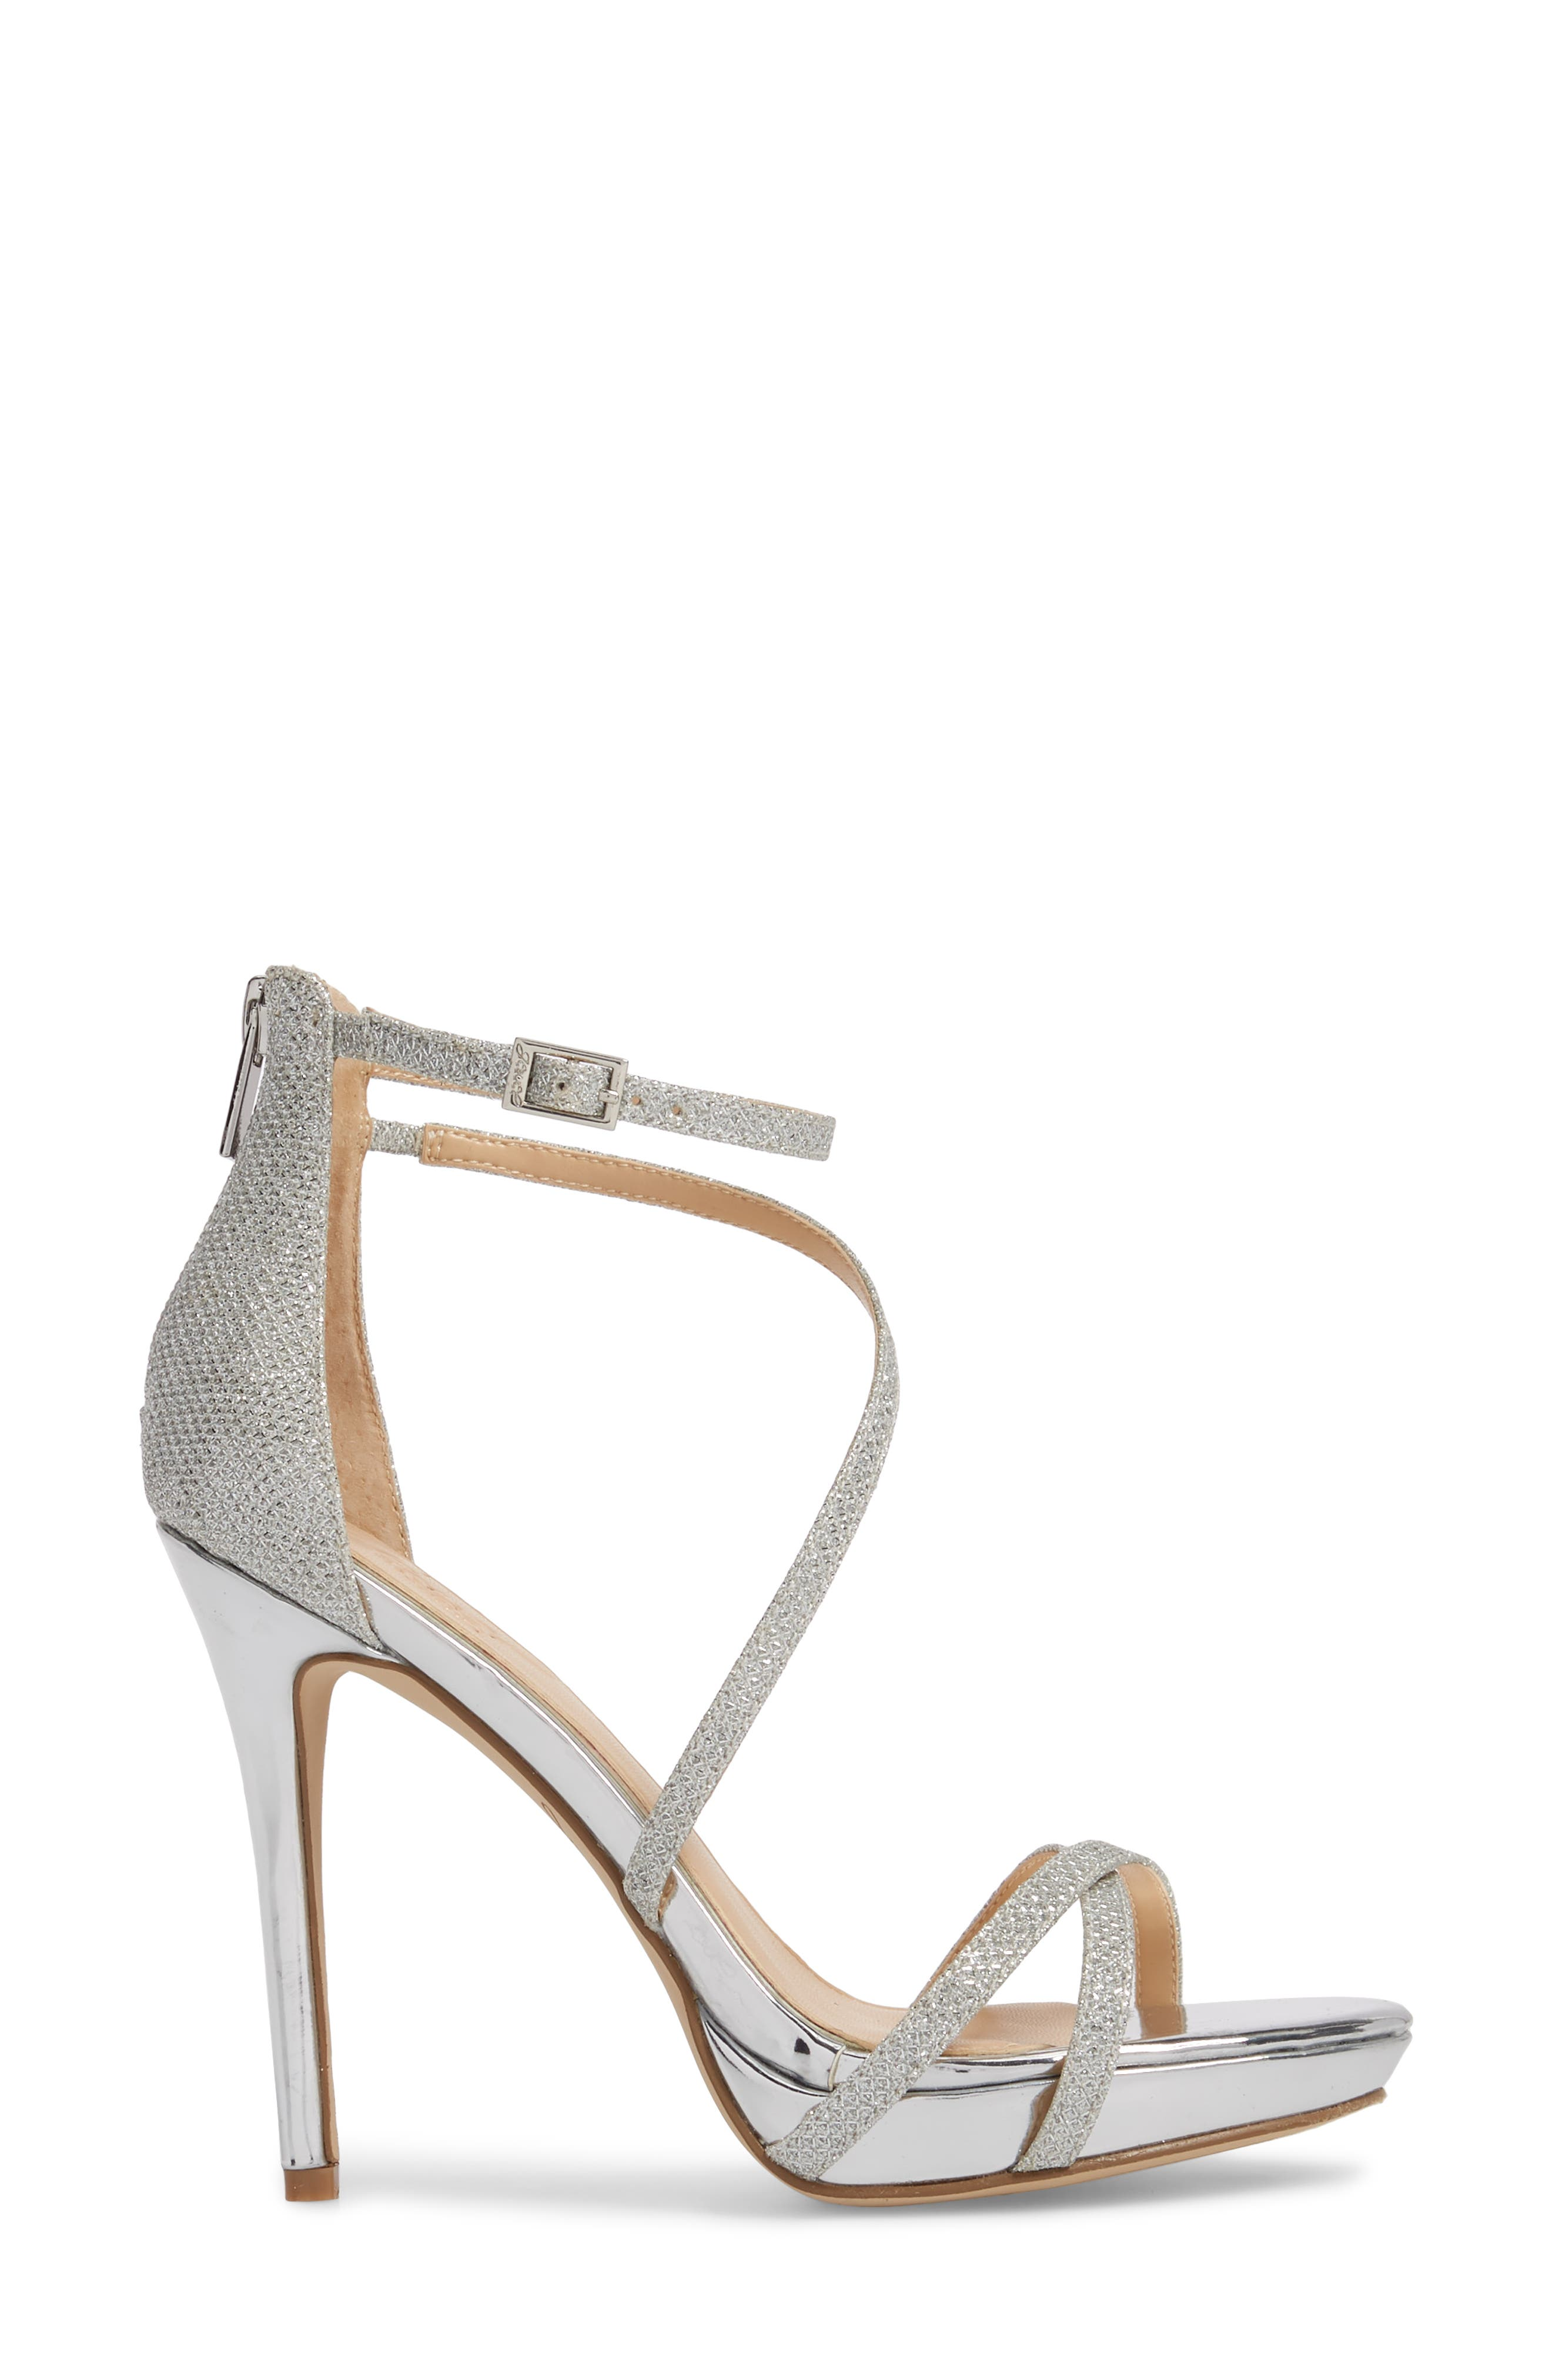 Galen Strappy Platform Sandal,                             Alternate thumbnail 3, color,                             SILVER GLITTER FABRIC